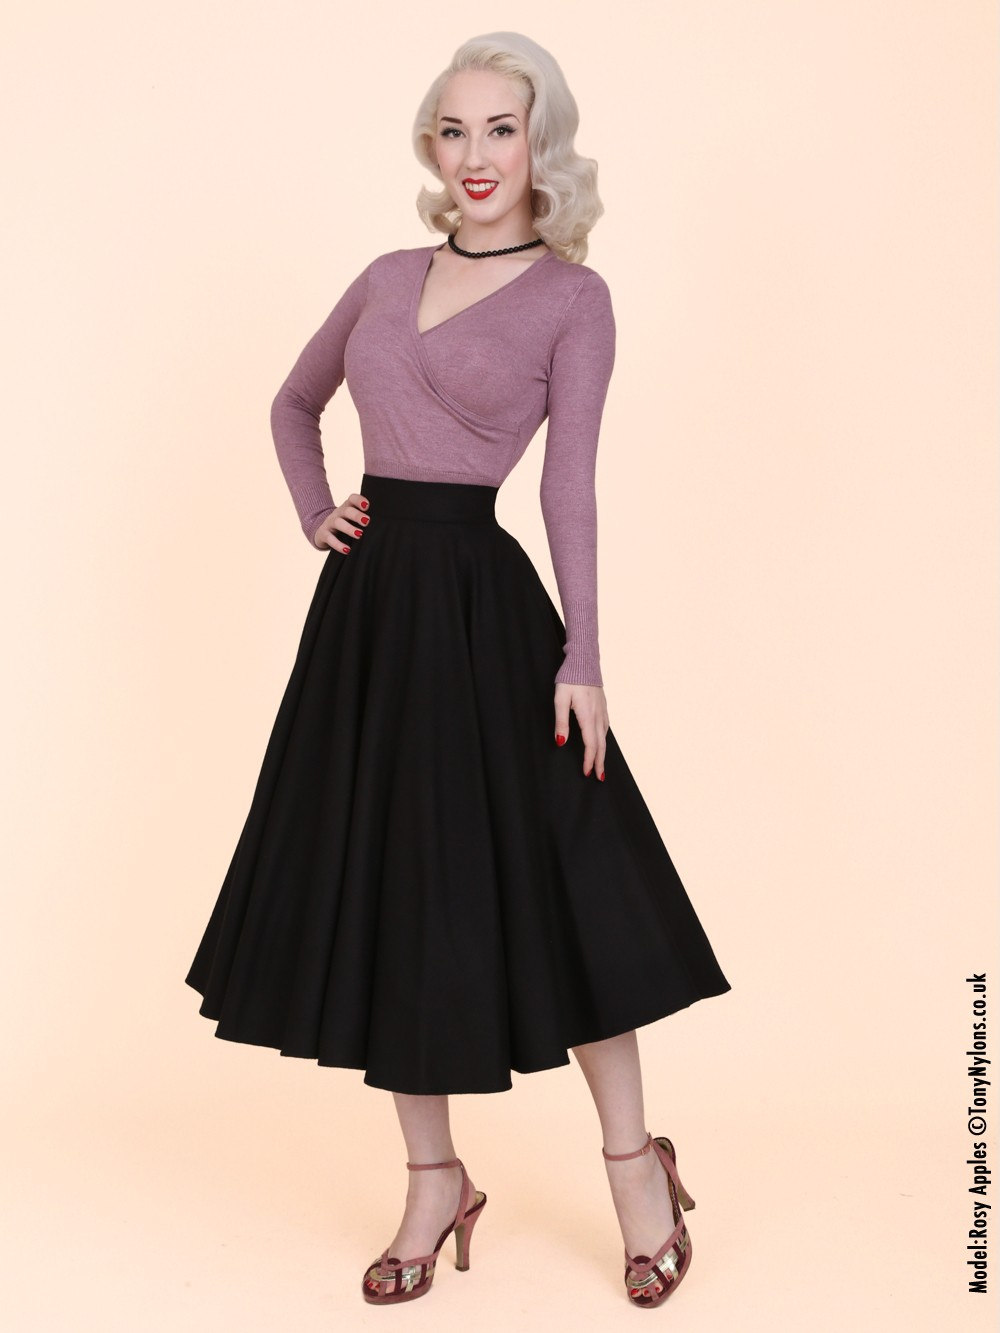 Source, Source, Source. Of course, there is one big glaring problem with circle skirts: math. No matter which style of circle skirt you choose to make, drafting your own pattern is probably the best way to go.